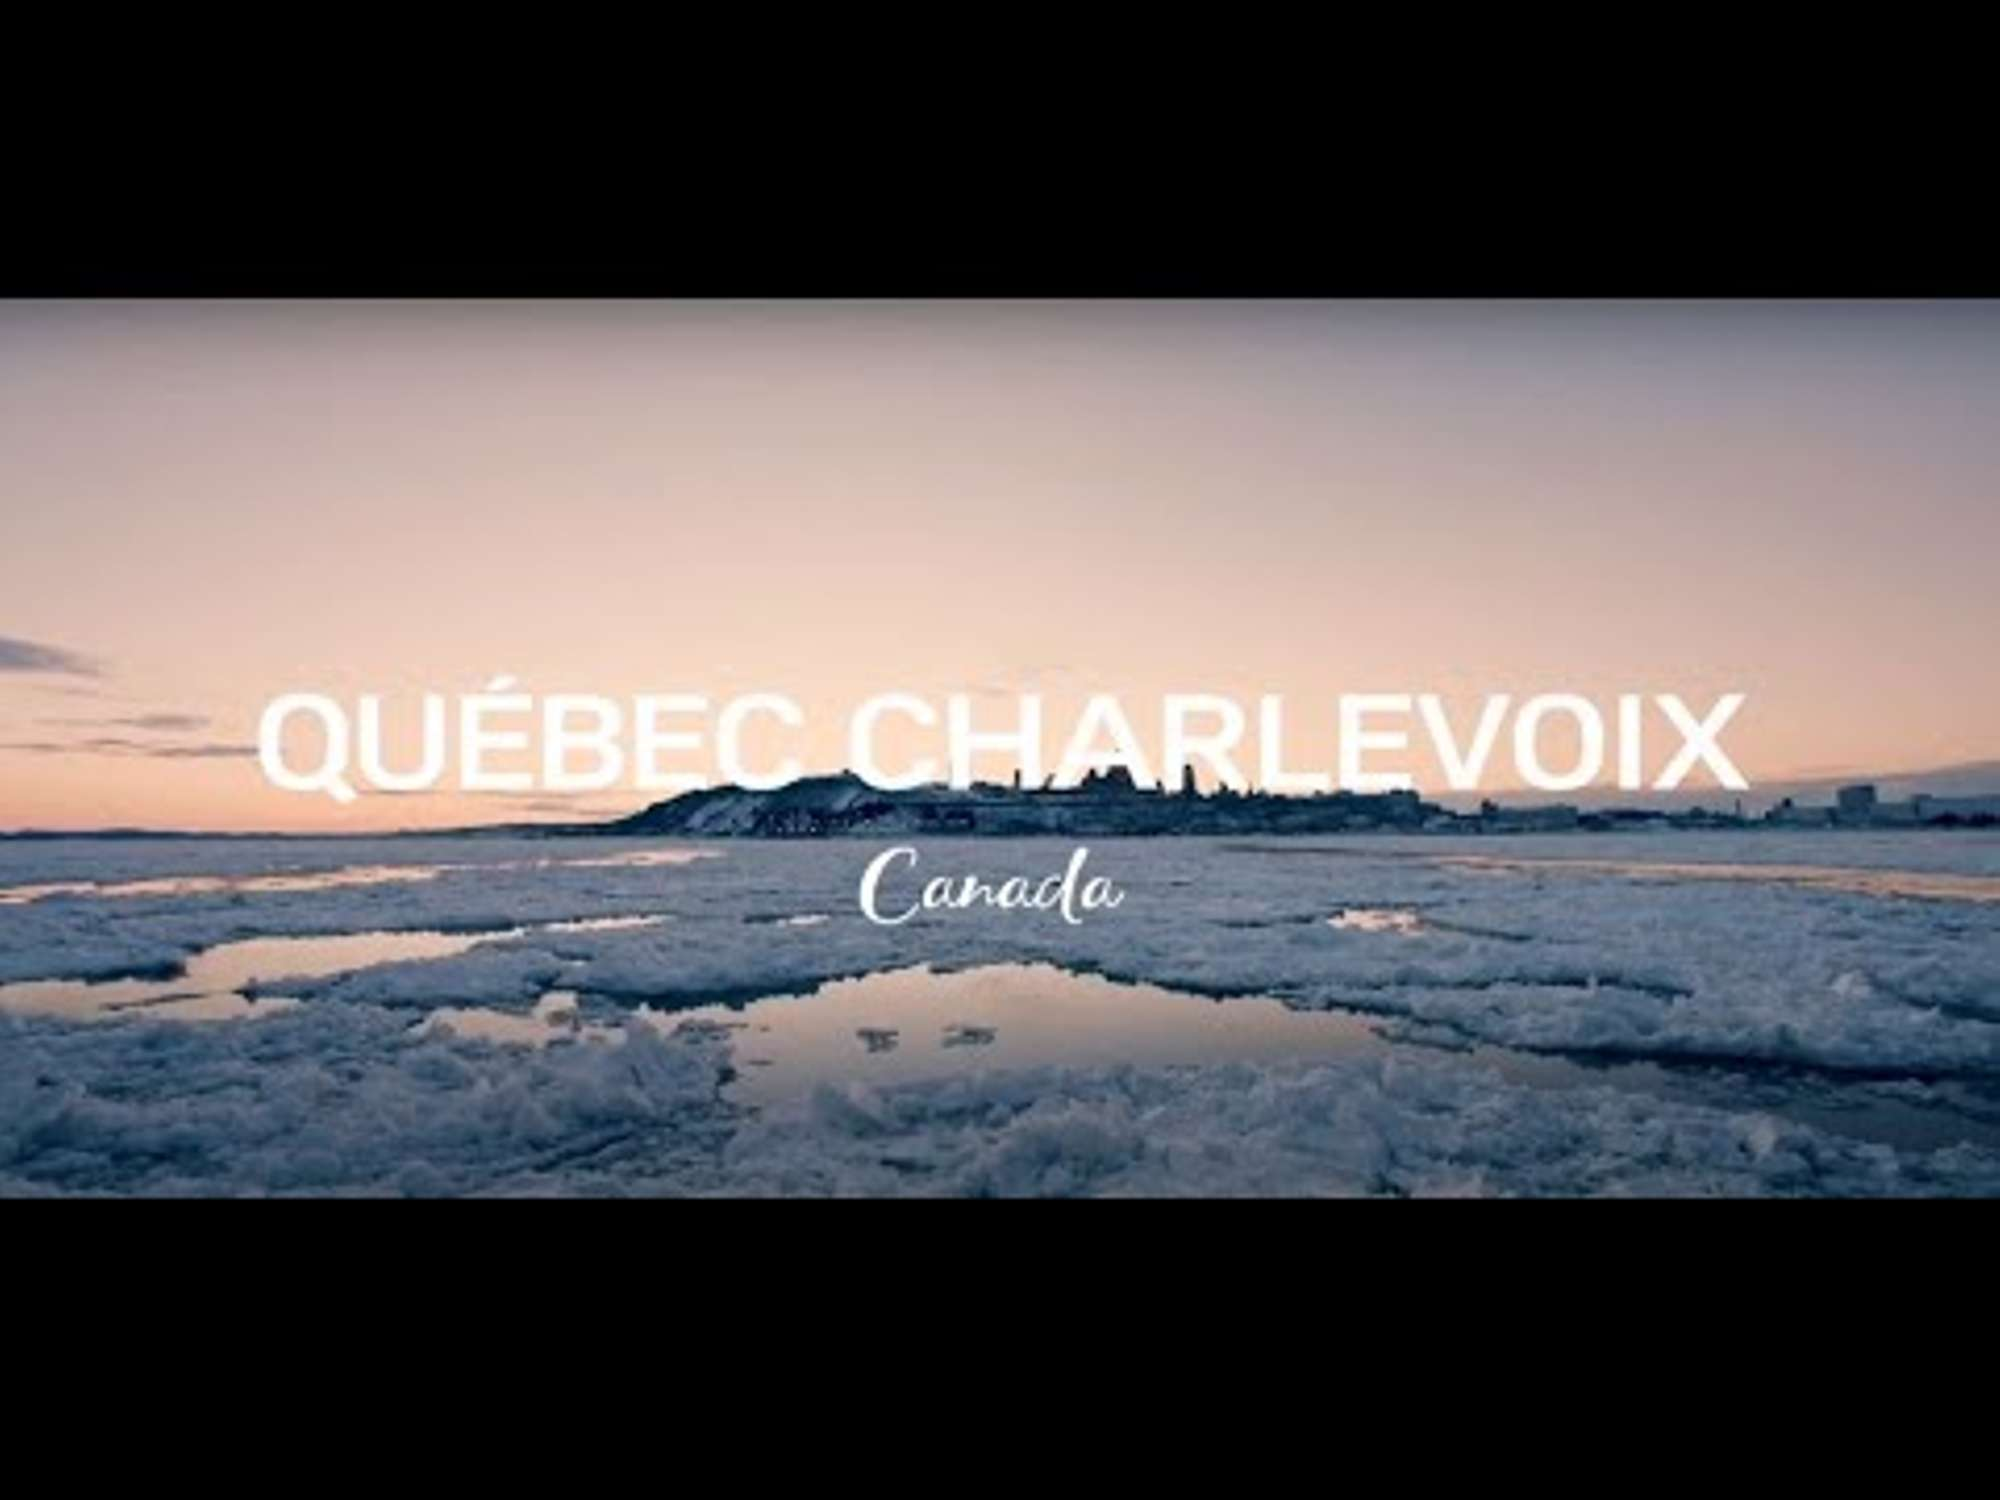 Open Quebec Charlevoix videos slideshow gallery at 1